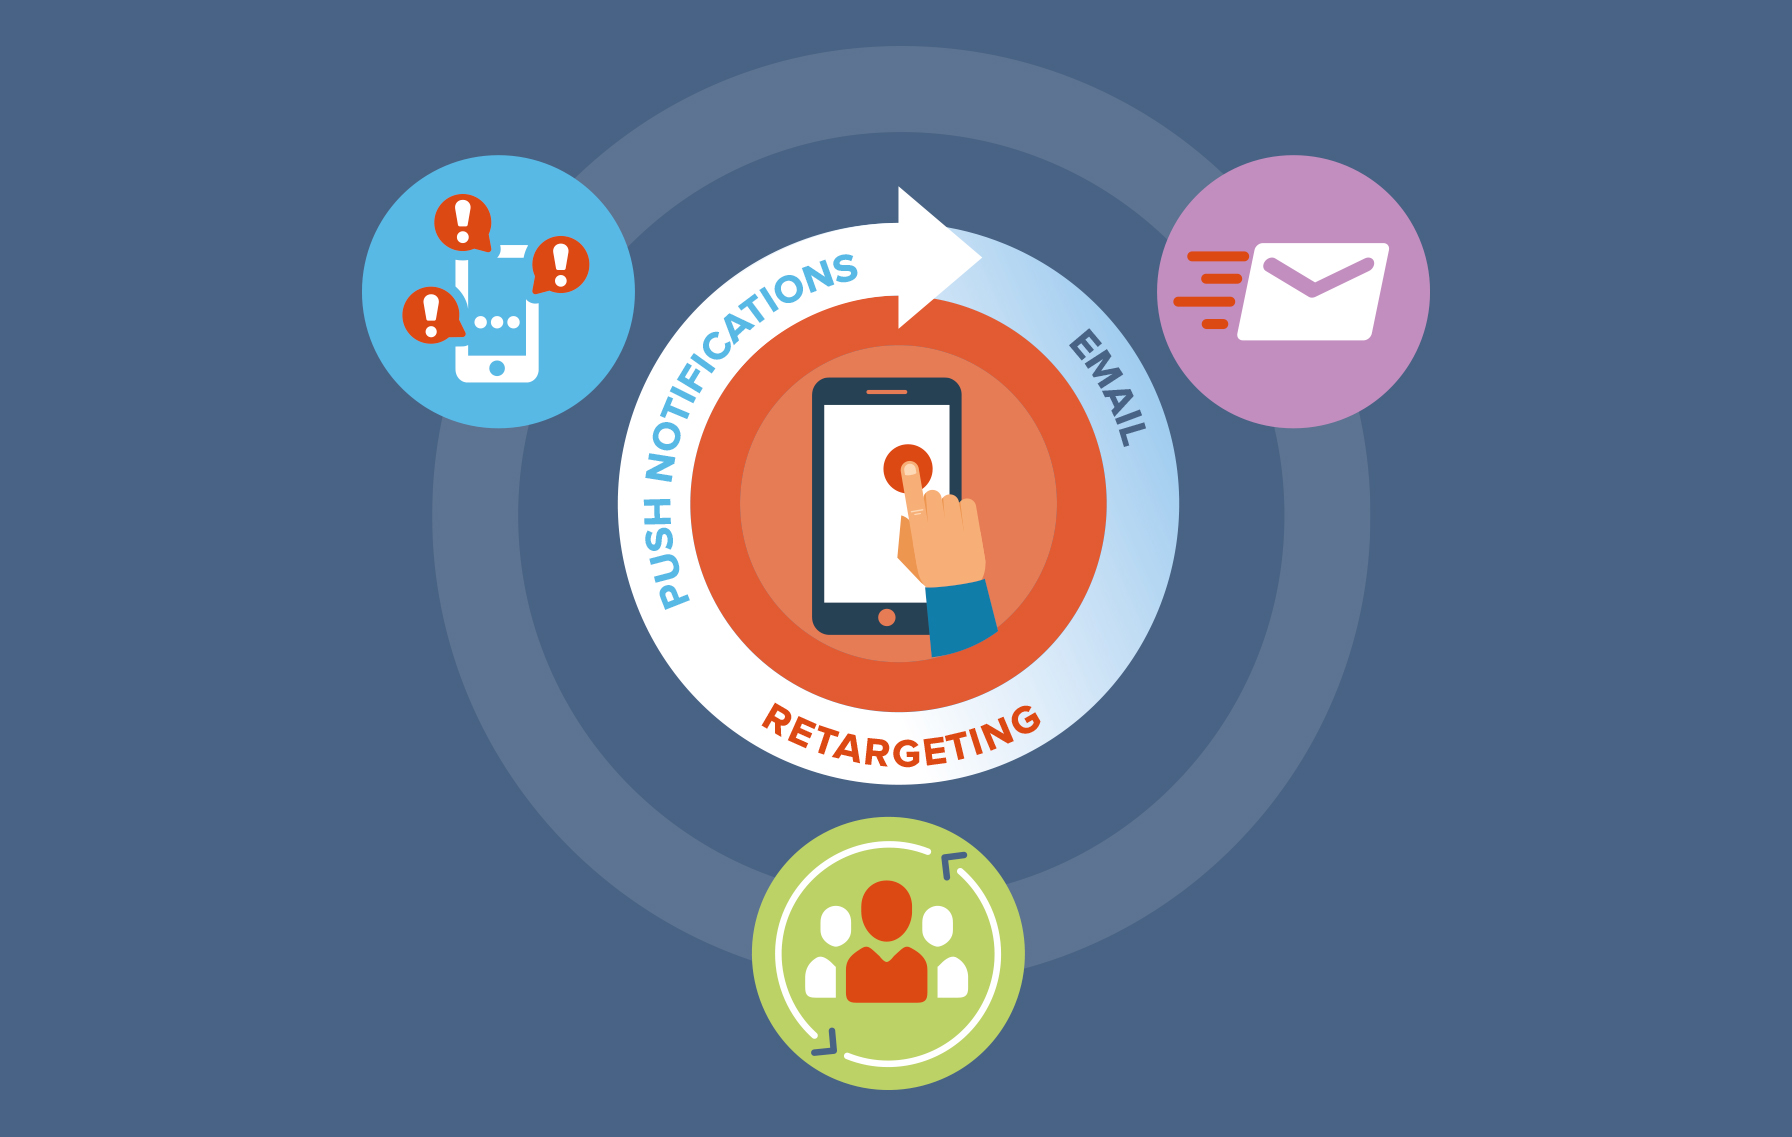 Retention Marketing: Building Mobile App Value Through Smart Targeting